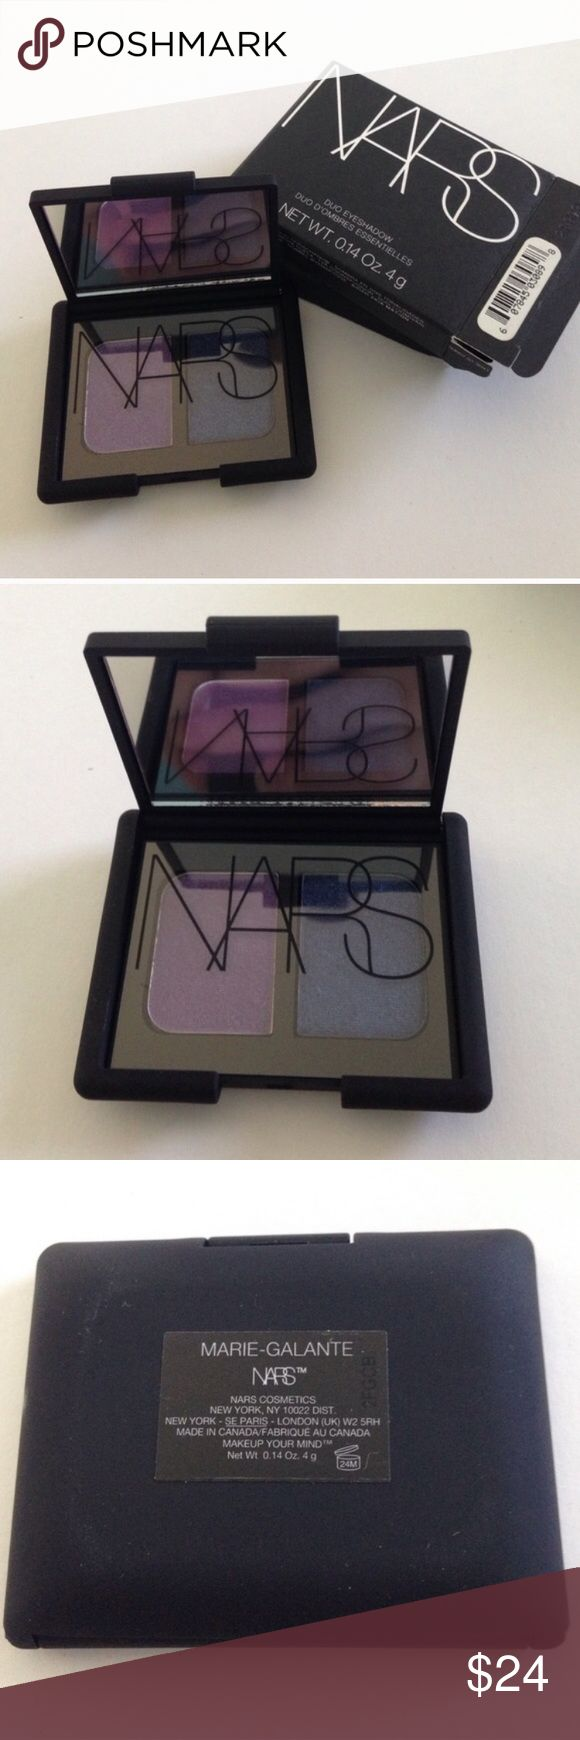 New Authentic NARS Eyeshadow Duo Marie-Galante Brand New Authentic NARS Eyeshadow Duo Marie-Galante in original packaging. Never swatched. No trades. NARS Makeup Eyeshadow